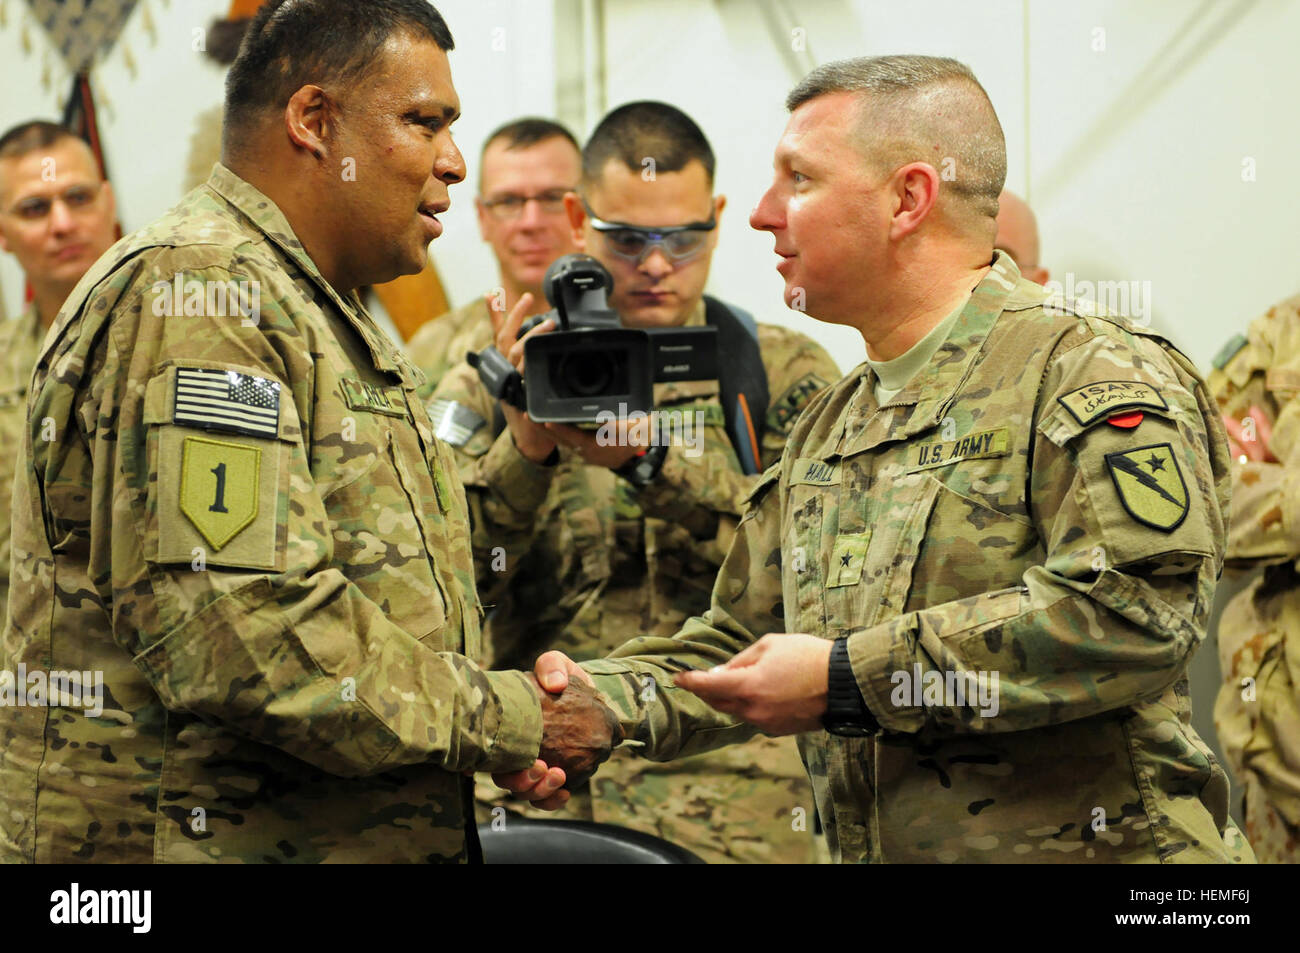 Sgt. Omar Avila, (left) accepts a commander's coin from Brig. Gen. William Hall (right), commander of the 136th - Stock Image